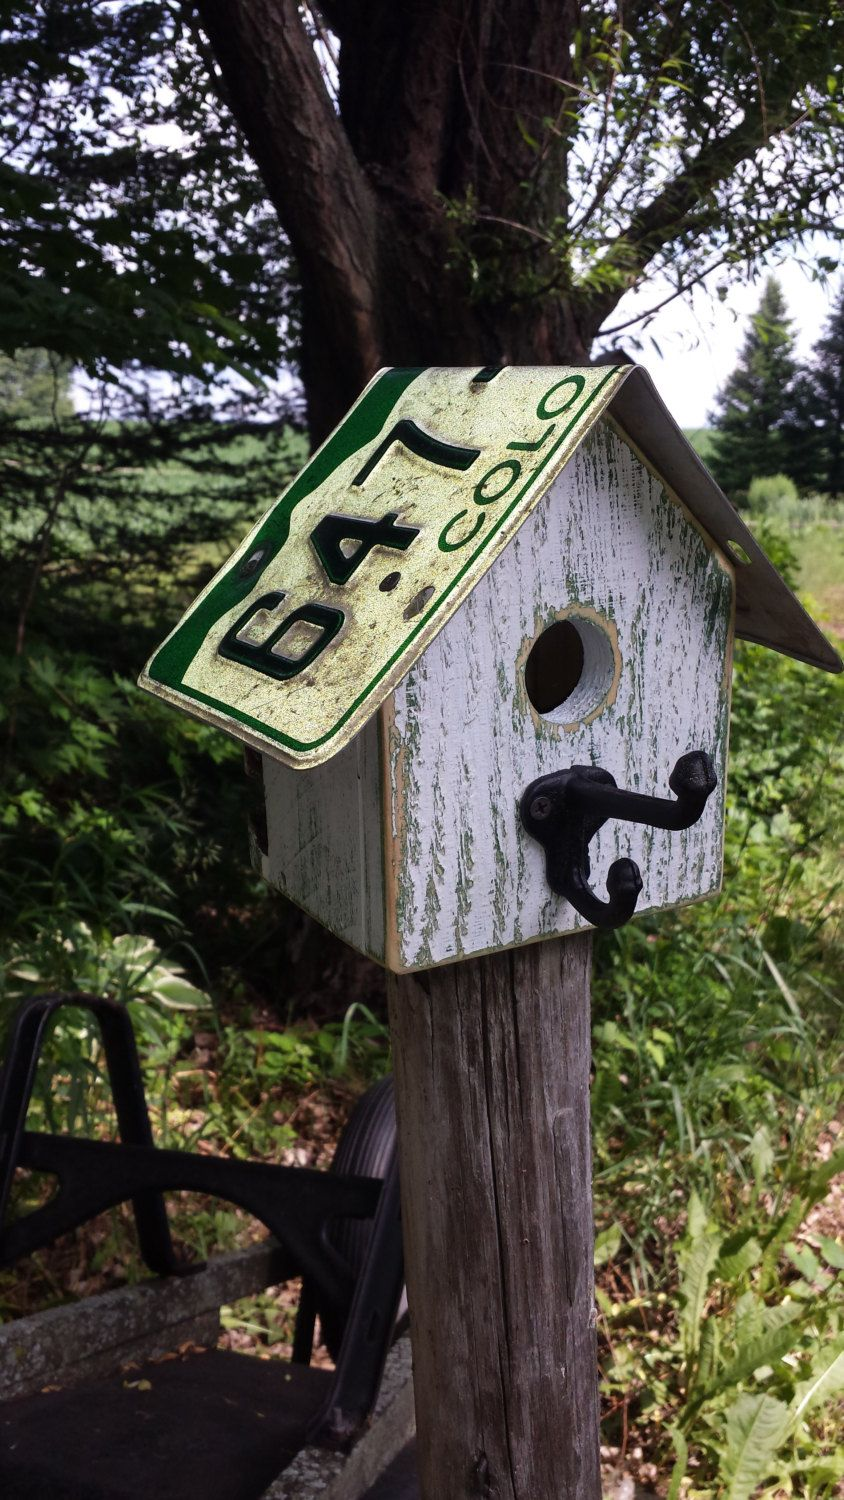 Colorado License Plate Roof On Reclaimed Wood Birdhouse